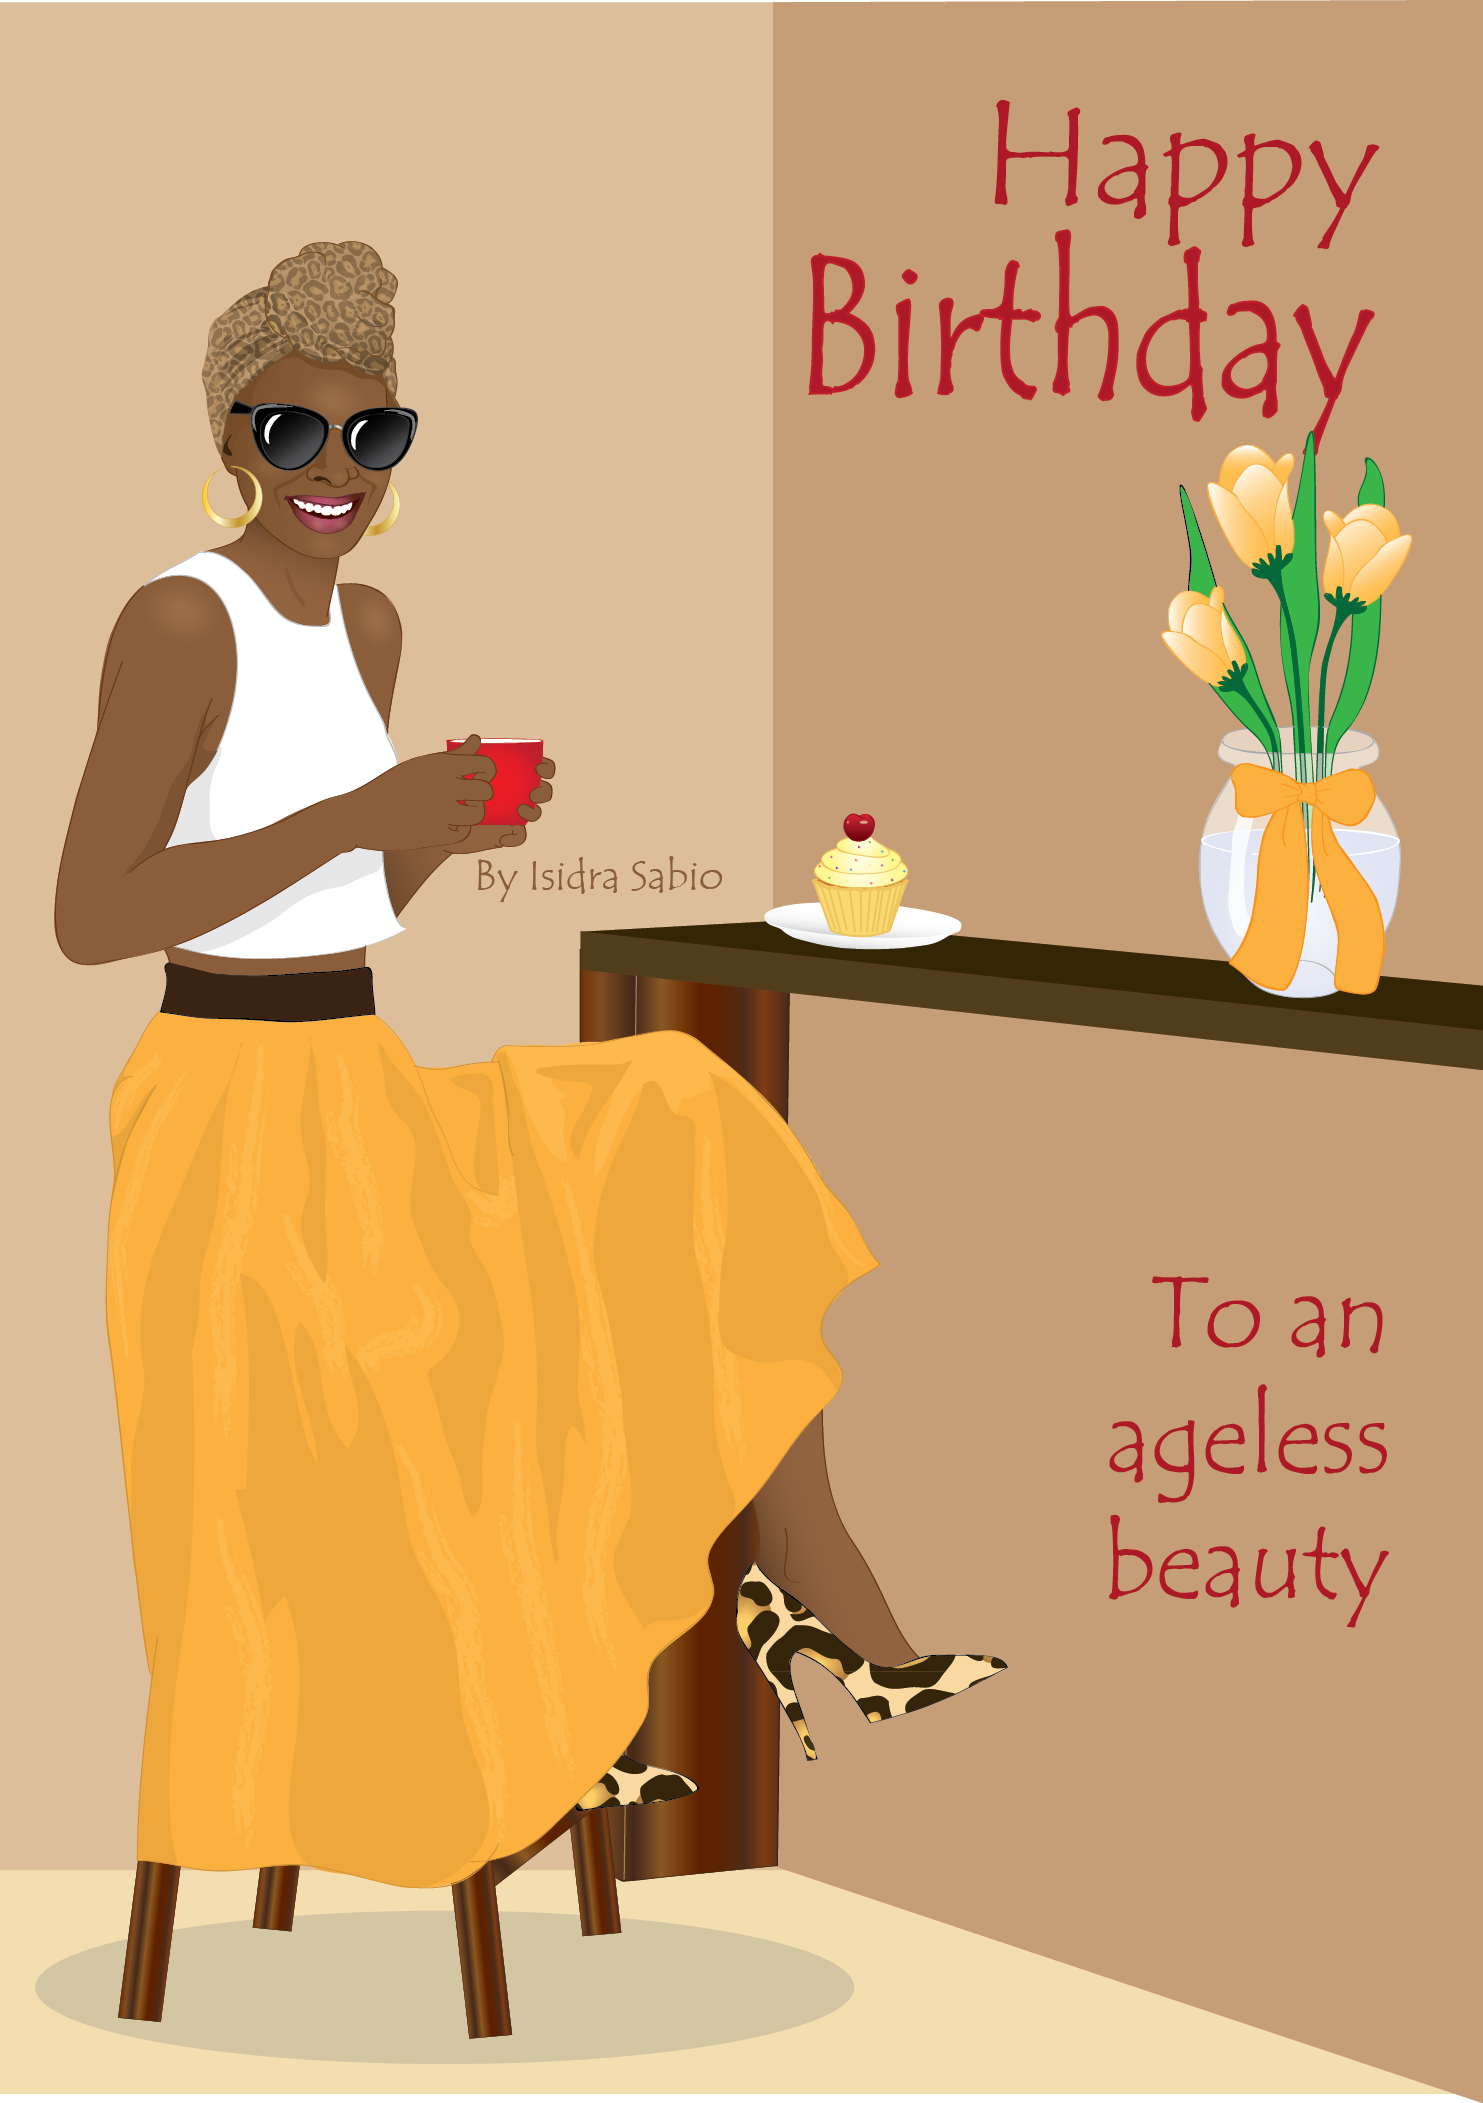 Birthday Women Beautiful Black Woman With A Head Scarf